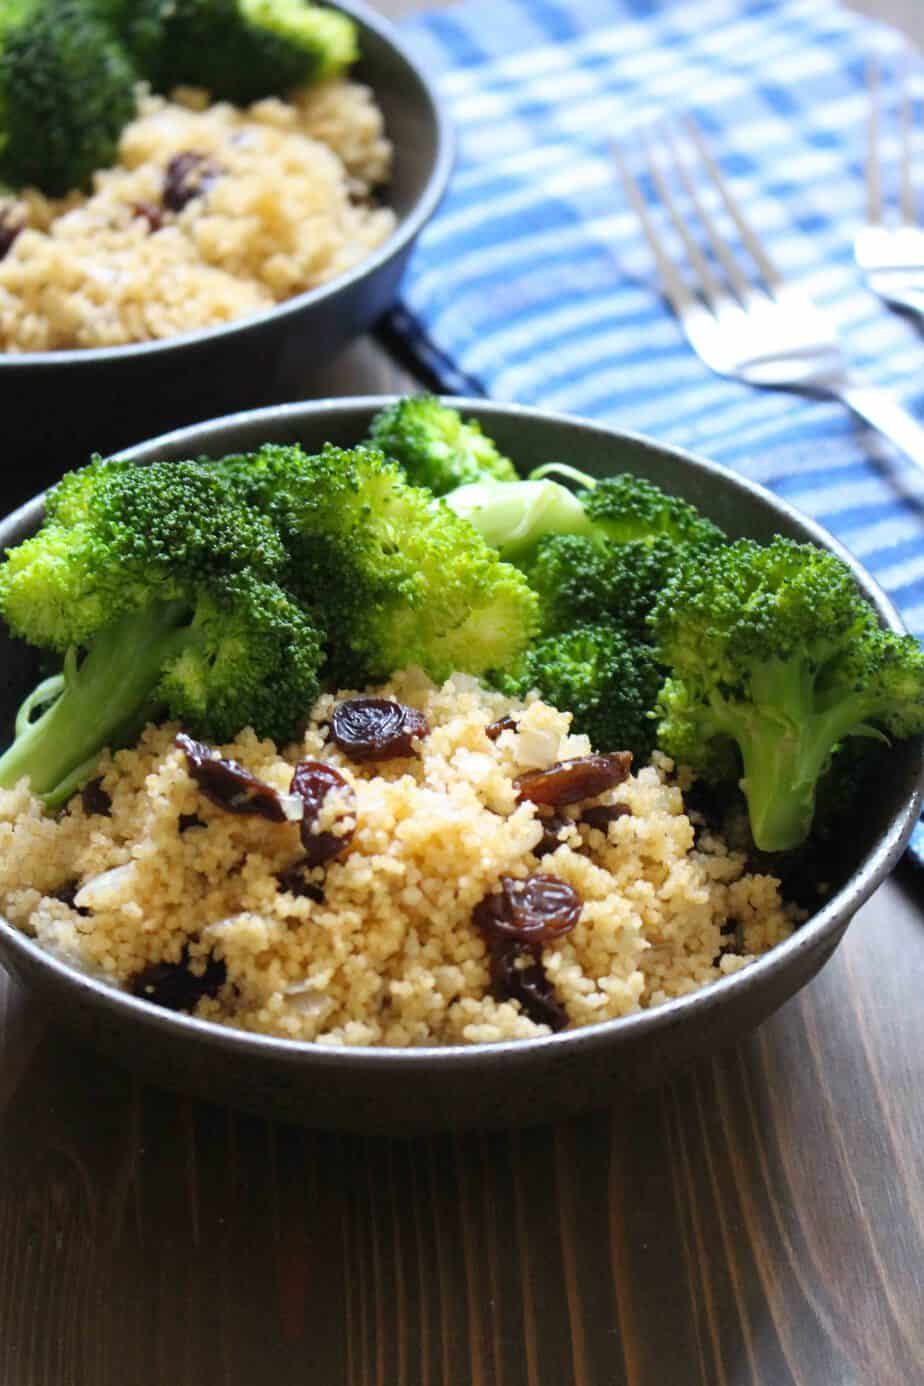 Spiced Couscous With Raisins Frugal Nutrition